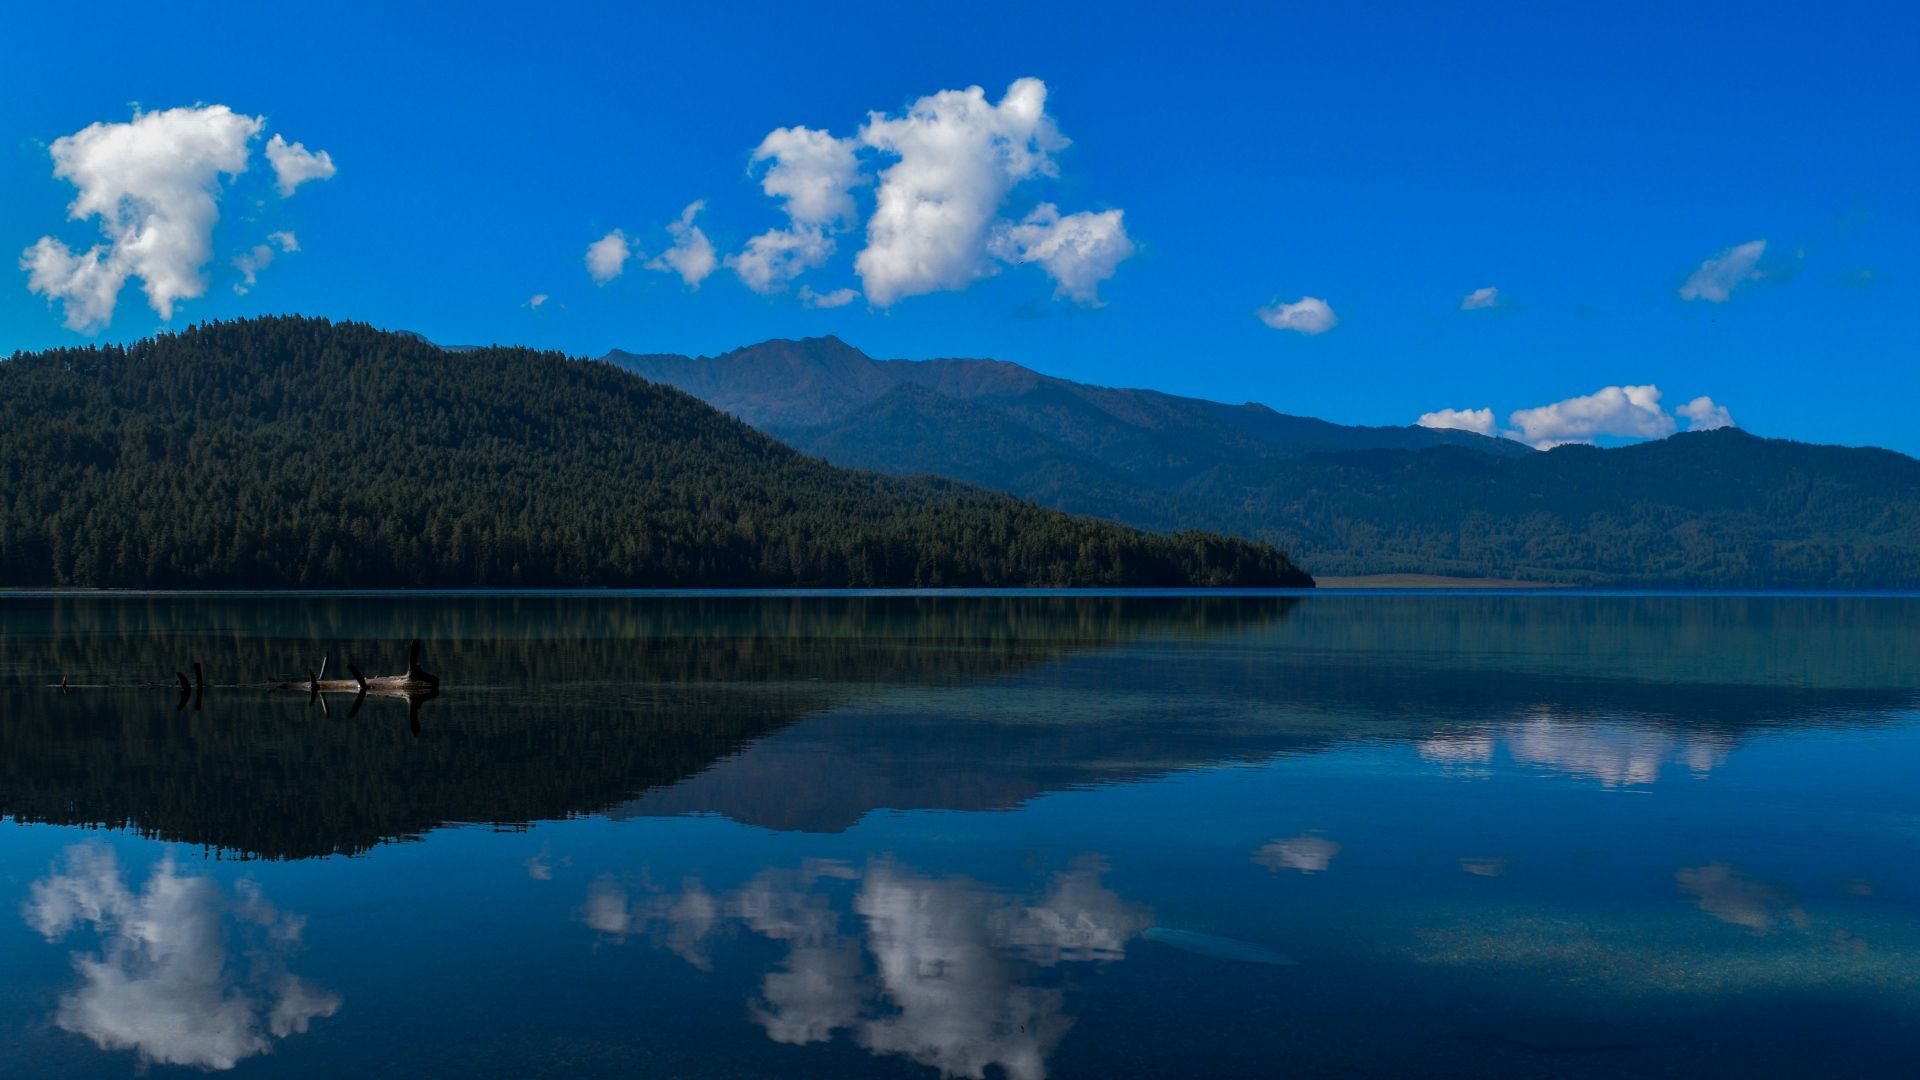 Rara Lake Wallpaper 1920x1080 In 2020 Nature Wallpaper Beautiful Wallpapers Wallpaper